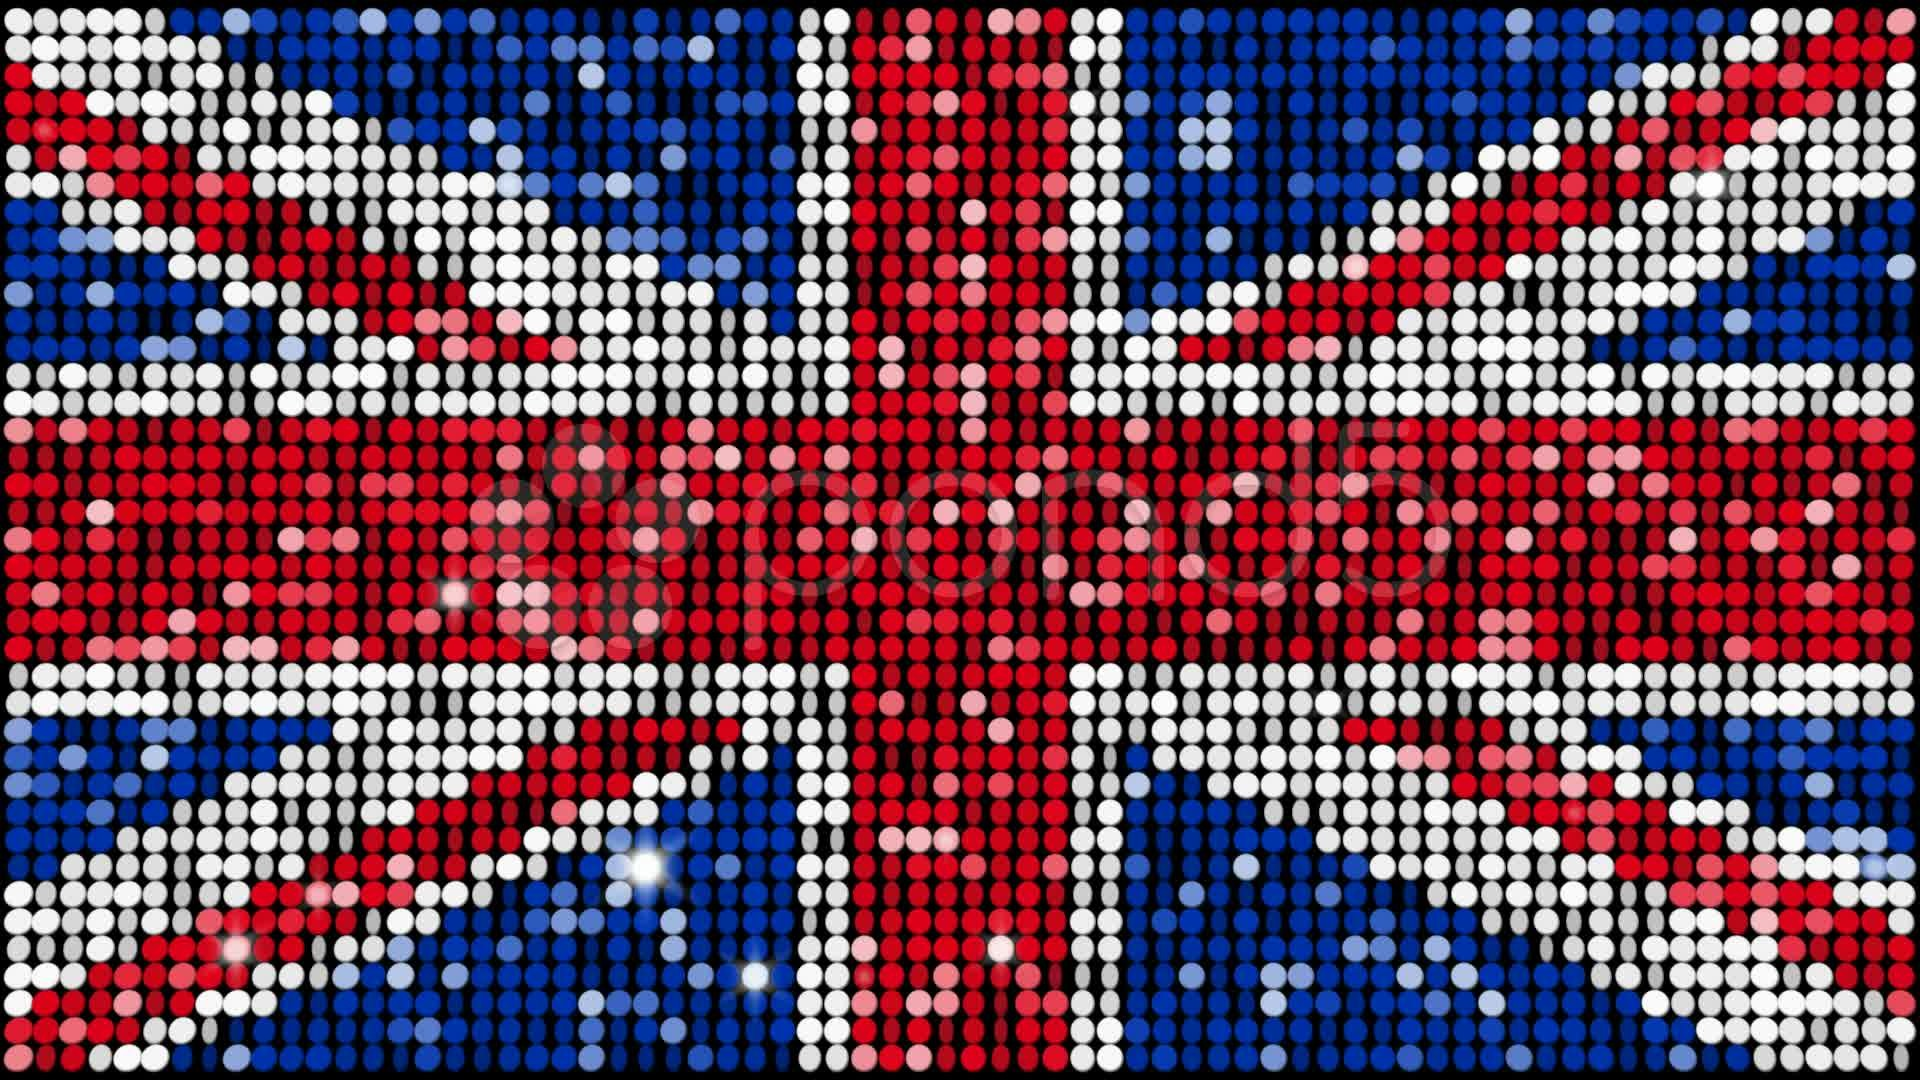 The flag of Great Britain HD Wallpaper 1920×1080 Great Britain Flag  Wallpapers (22